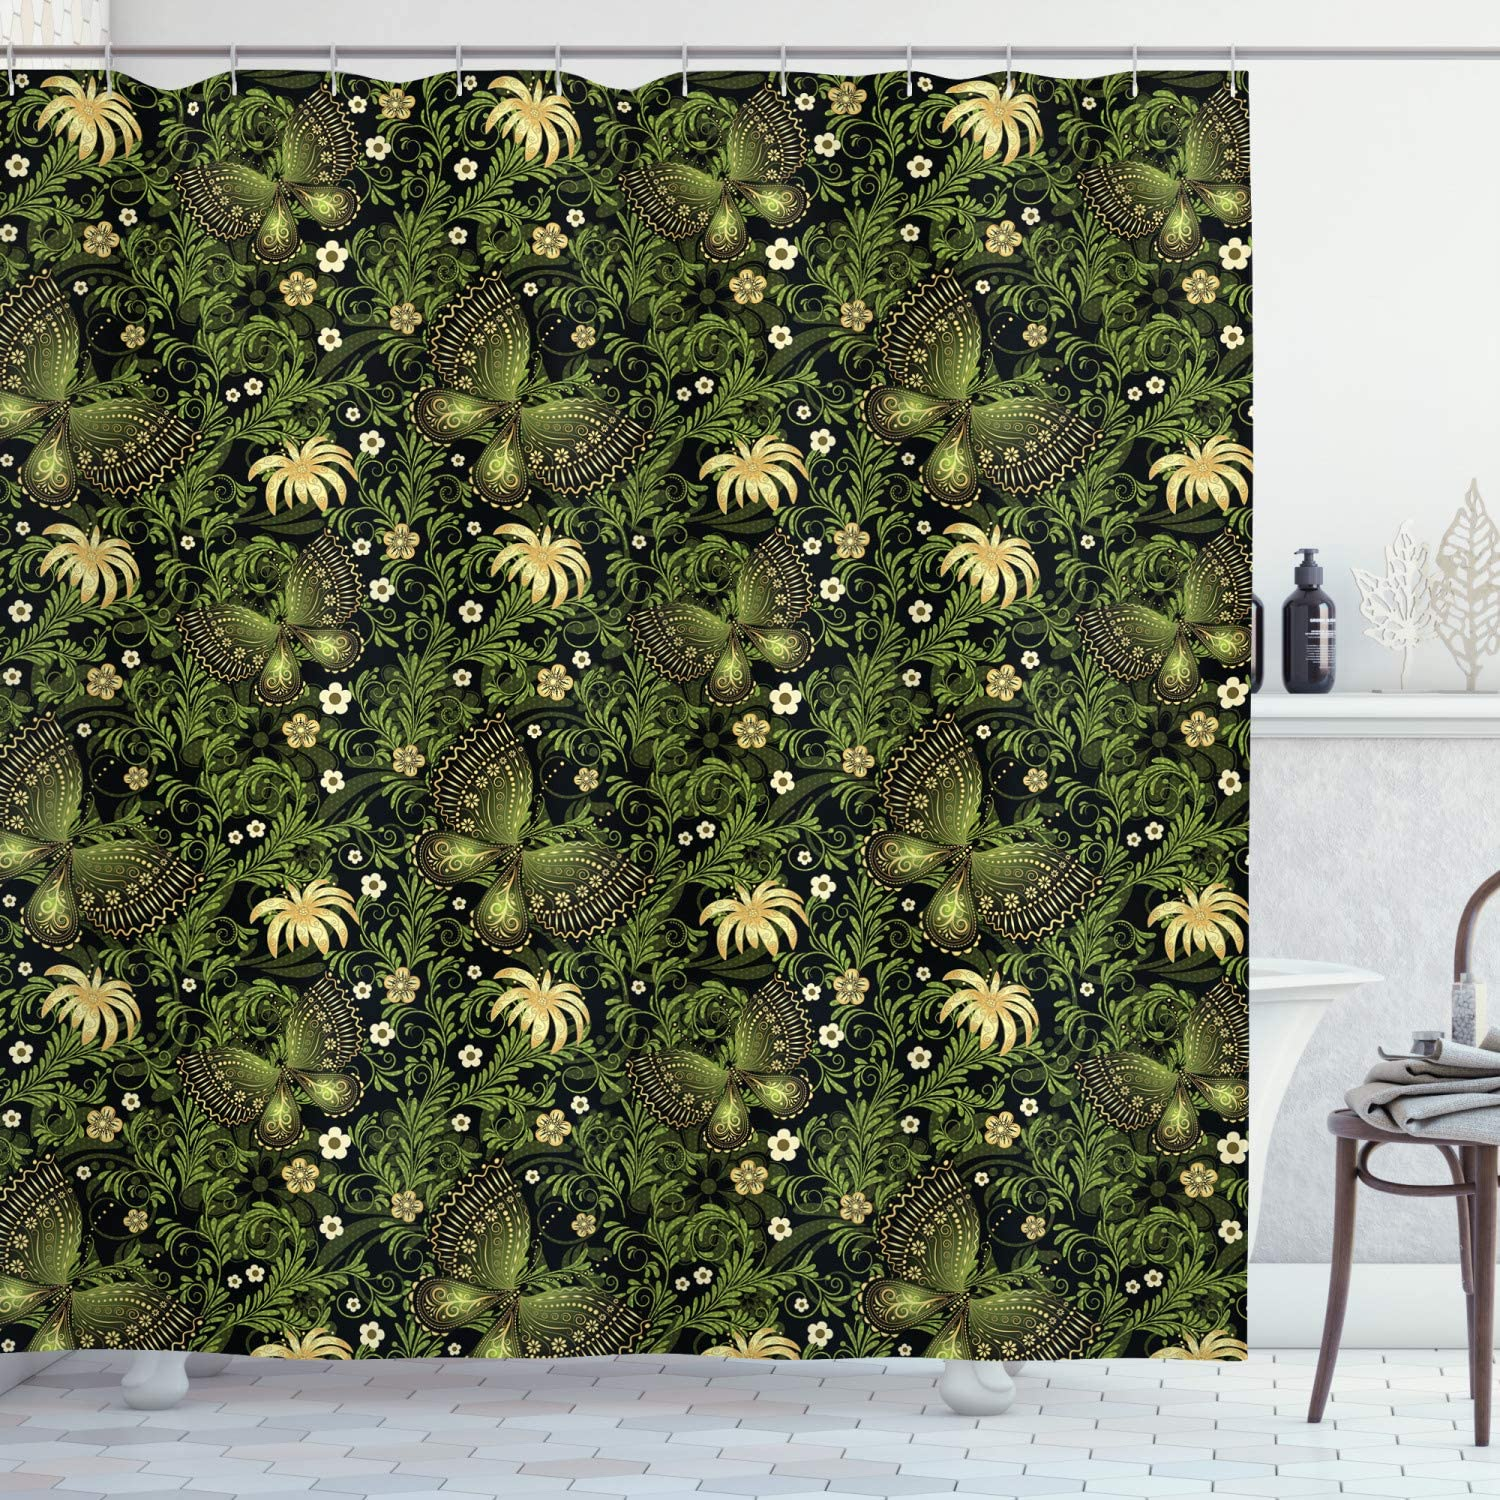 Ambesonne Sage Shower Curtain, Spring Inspired Ornaments Butterflies Little Blossoms Swirled Leaves Vintage, Cloth Fabric Bathroom Decor Set with Hooks, 70